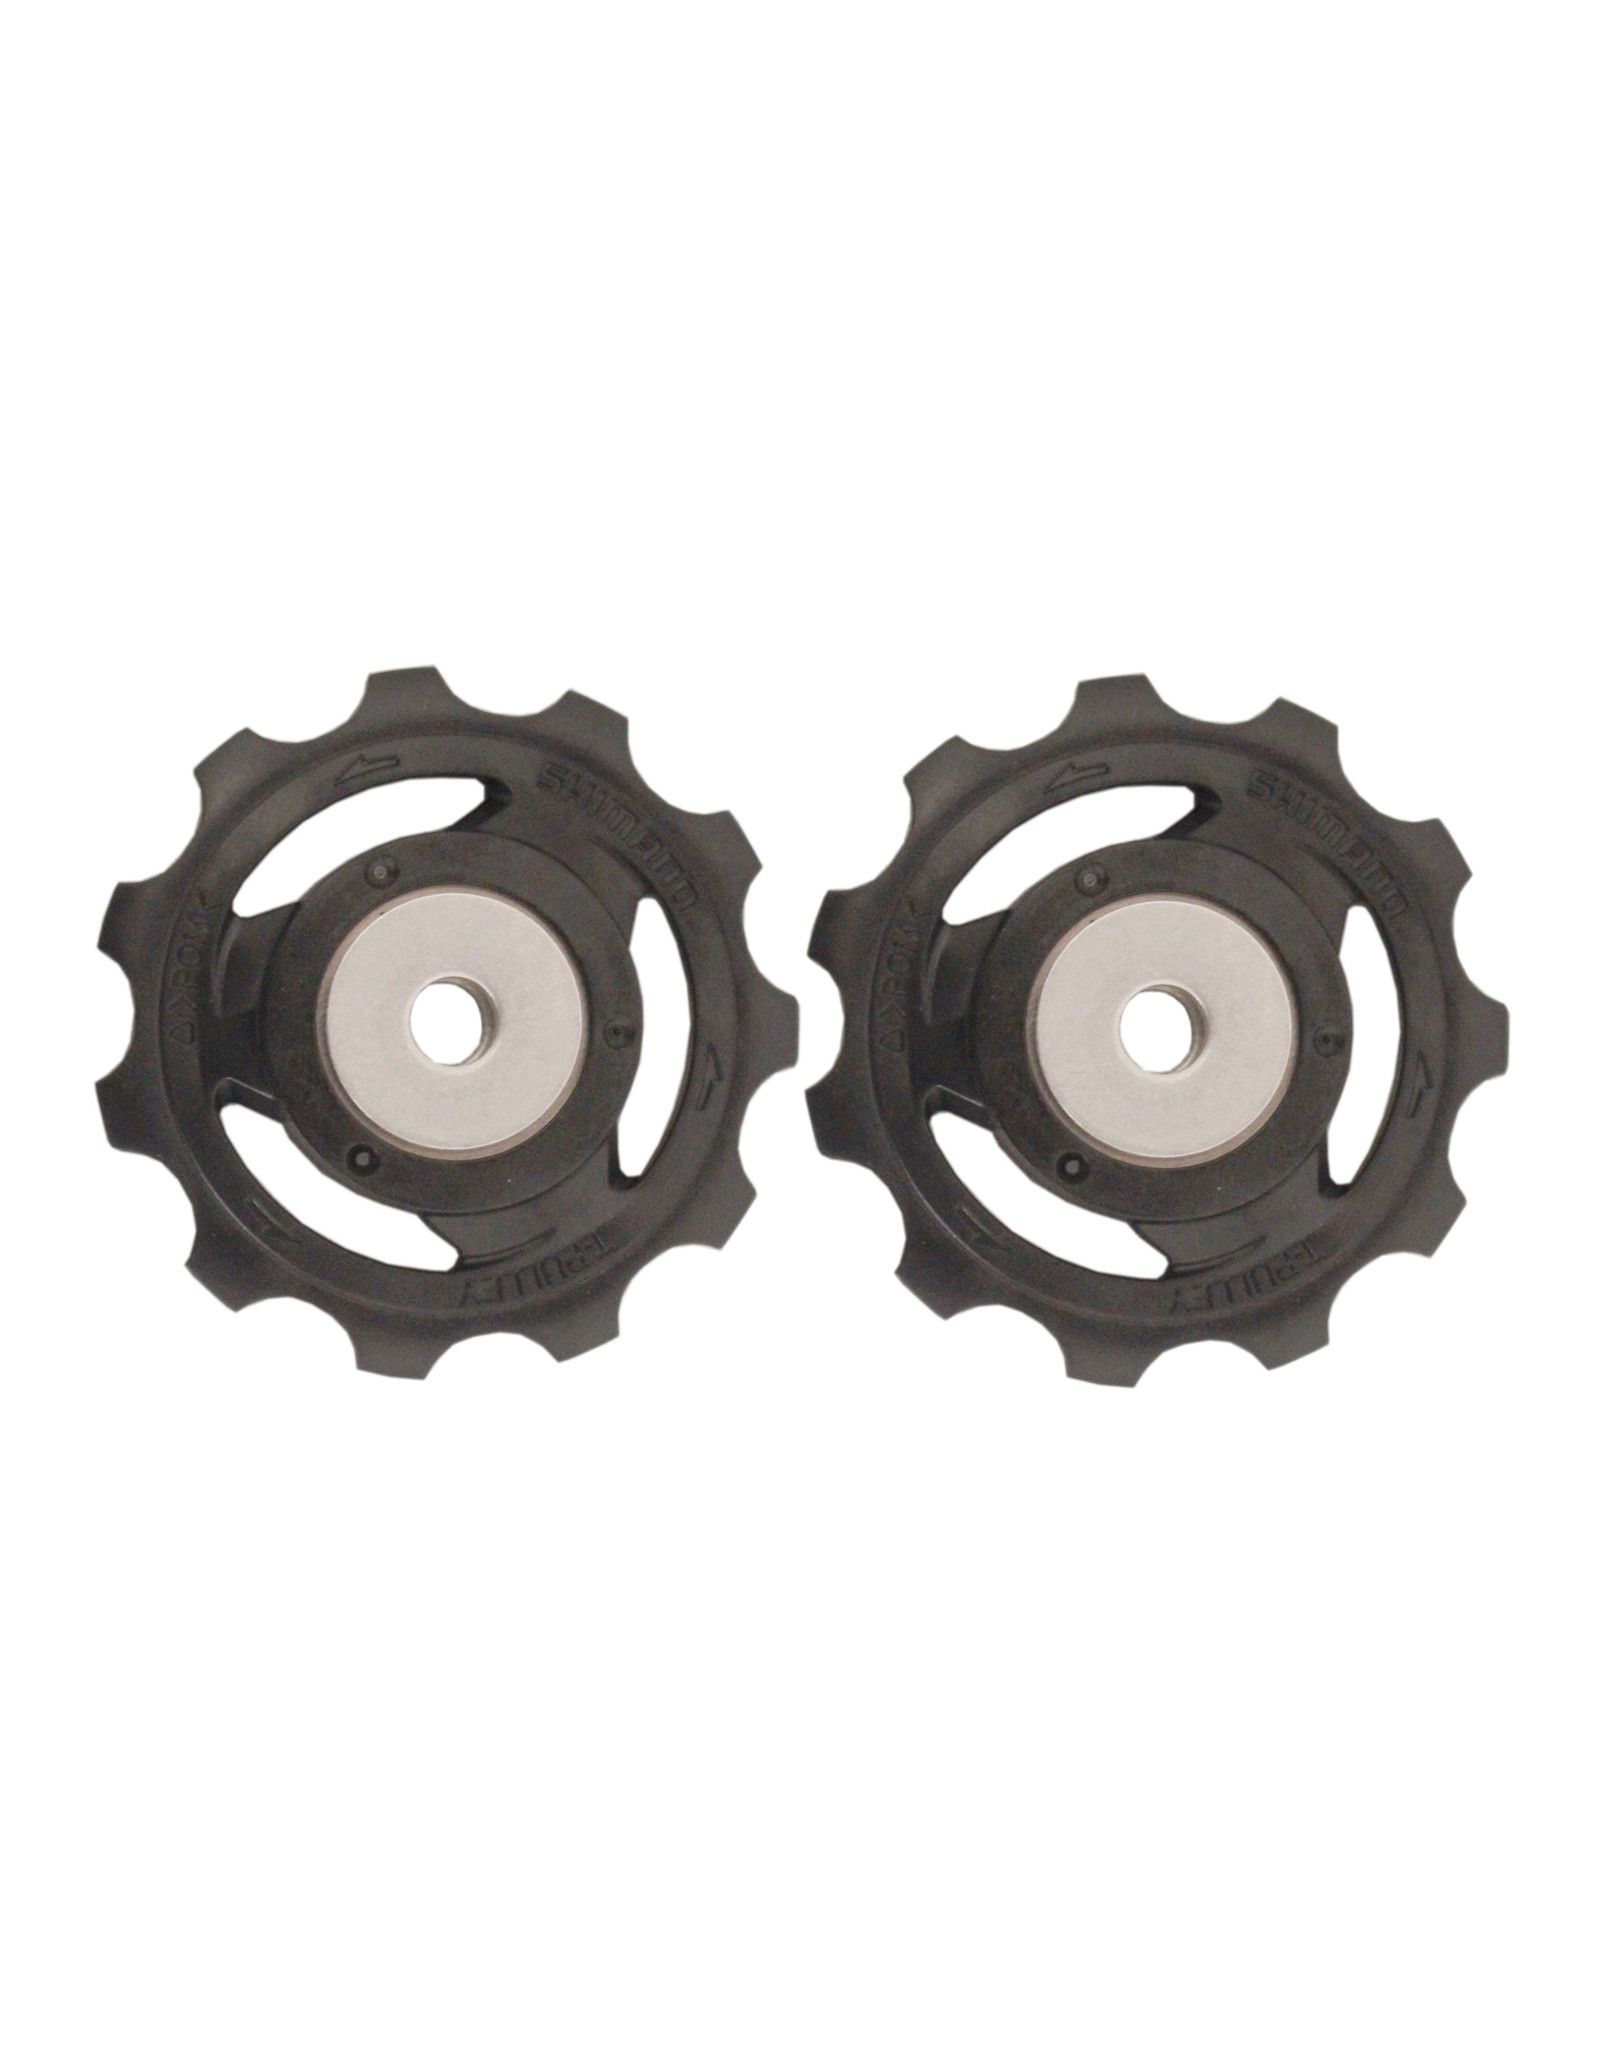 Shimano Shimano Galets RD-R8000 Ultegra, Tension et Guide